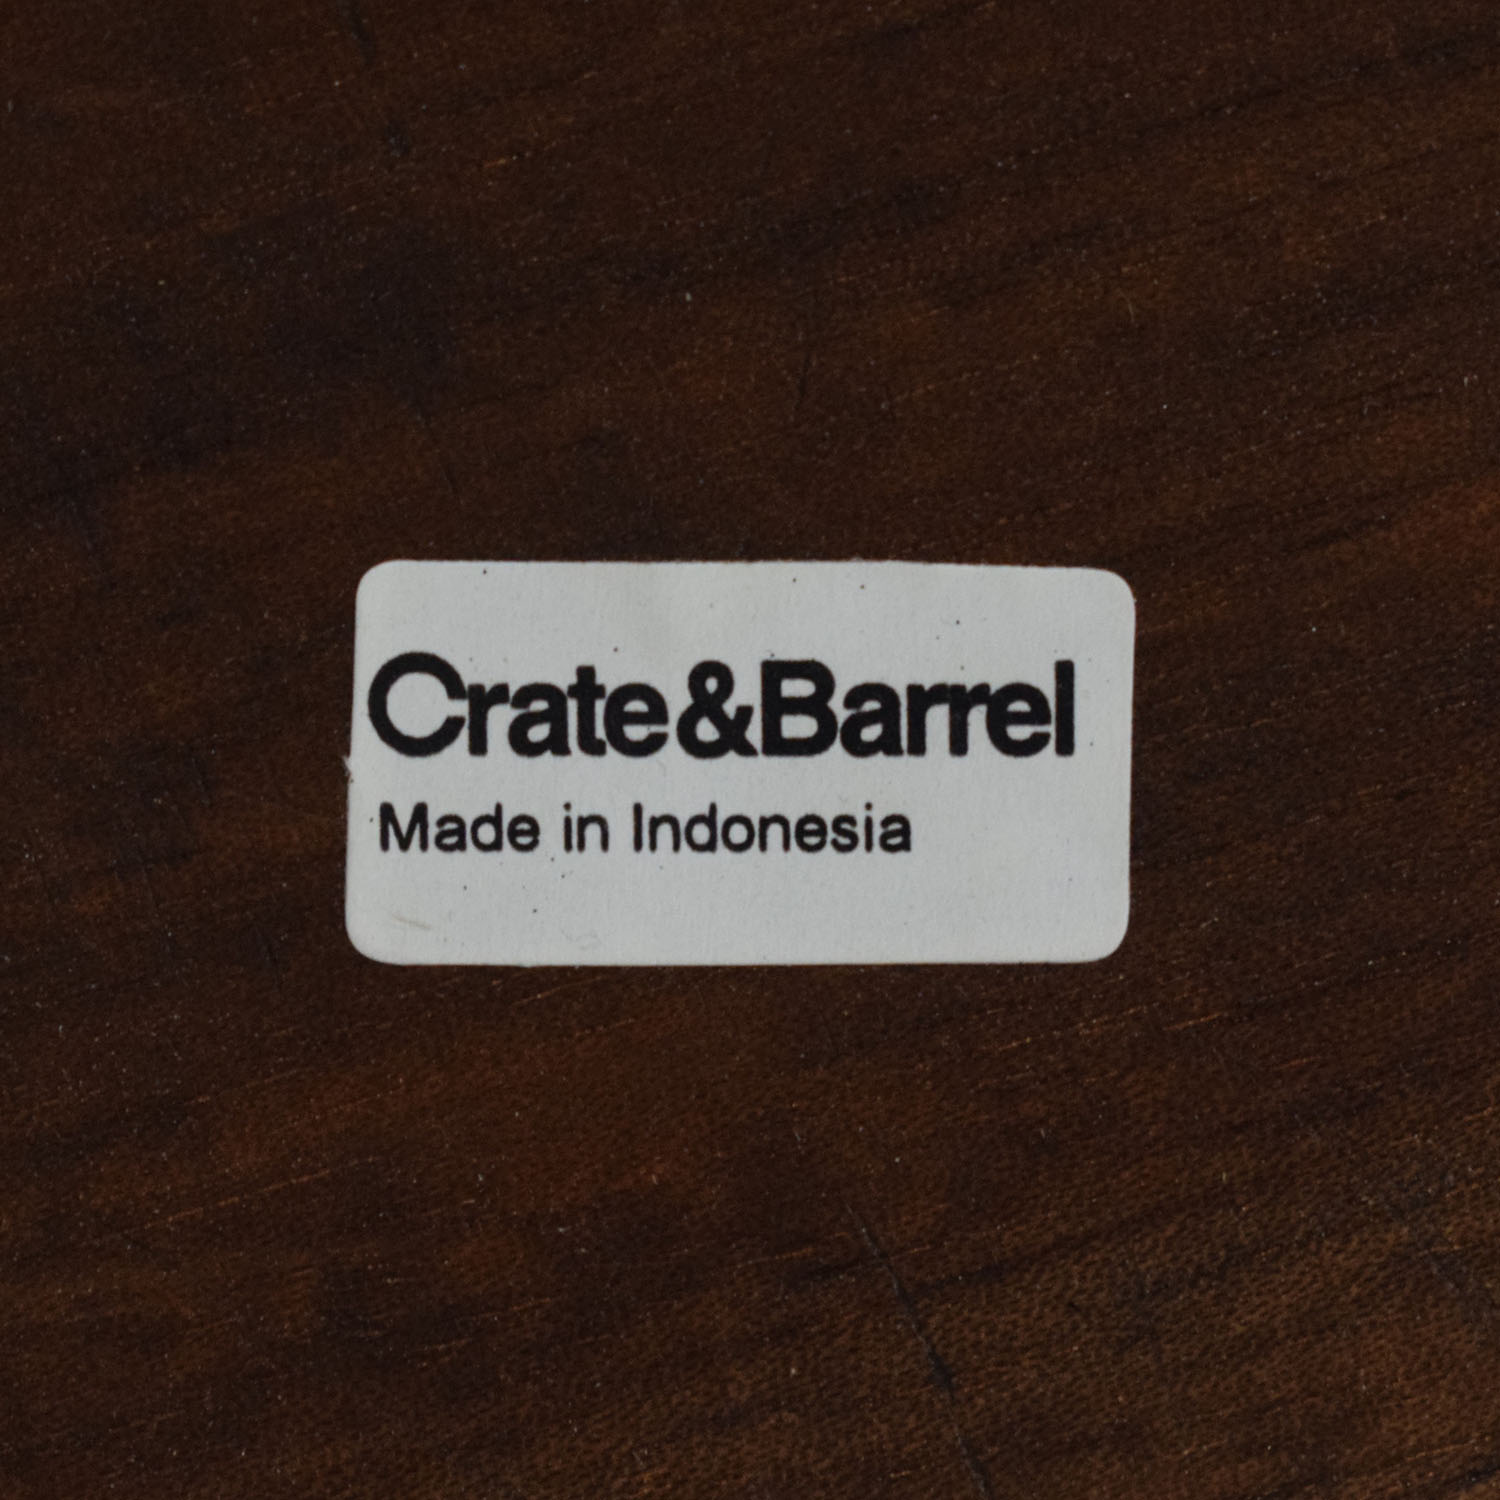 Crate & Barrel Crate & Barrel Farmhouse Dining Chairs Dining Chairs